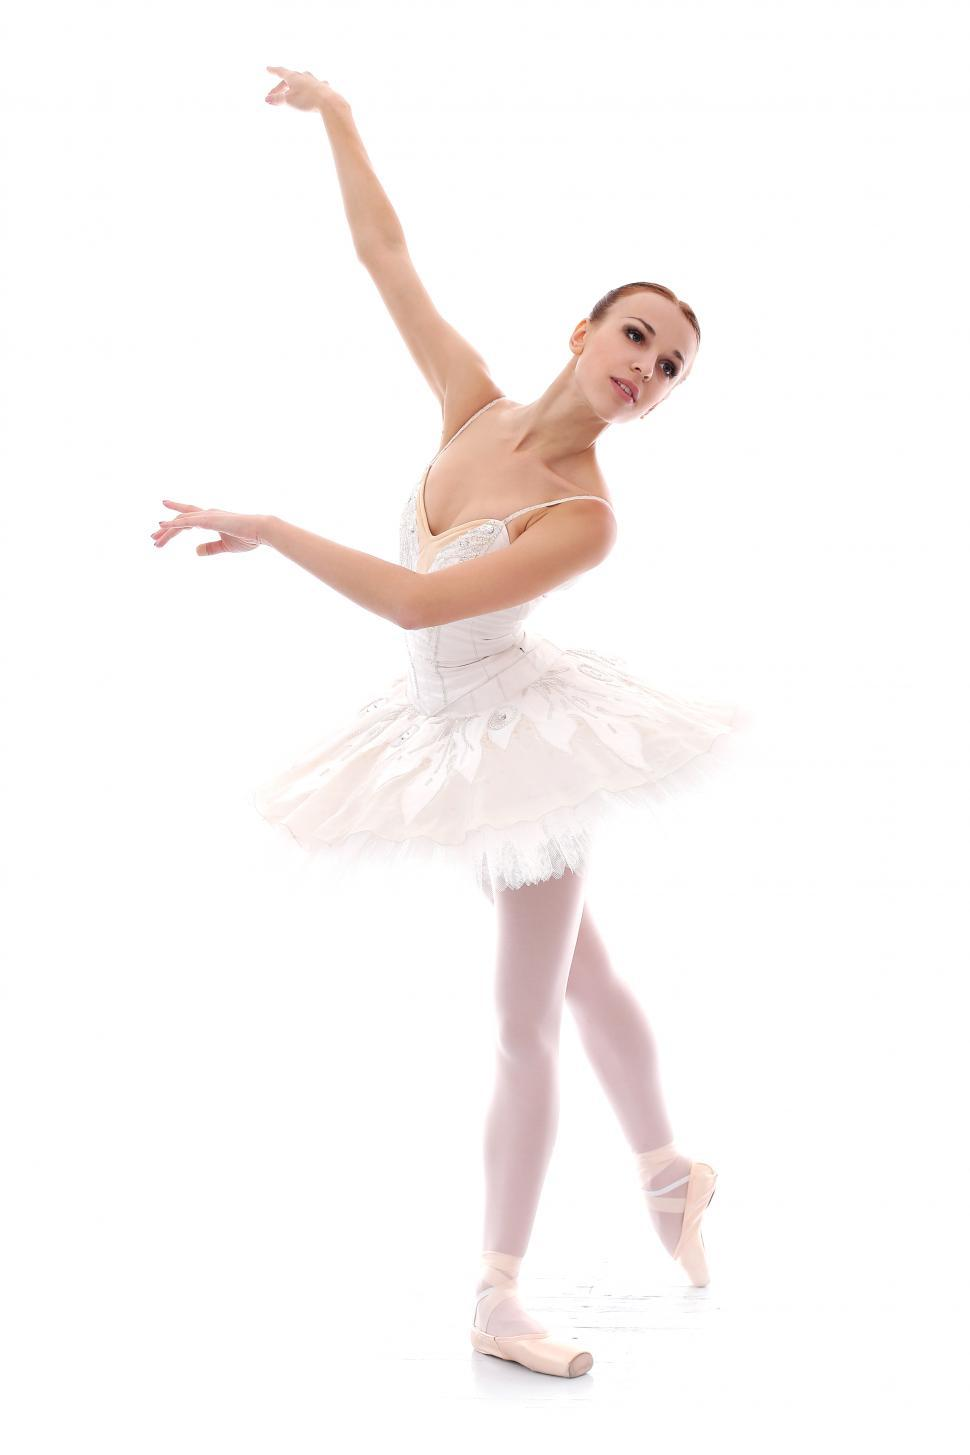 Download Free Stock Photo of Ballerina in ballet pose on white background